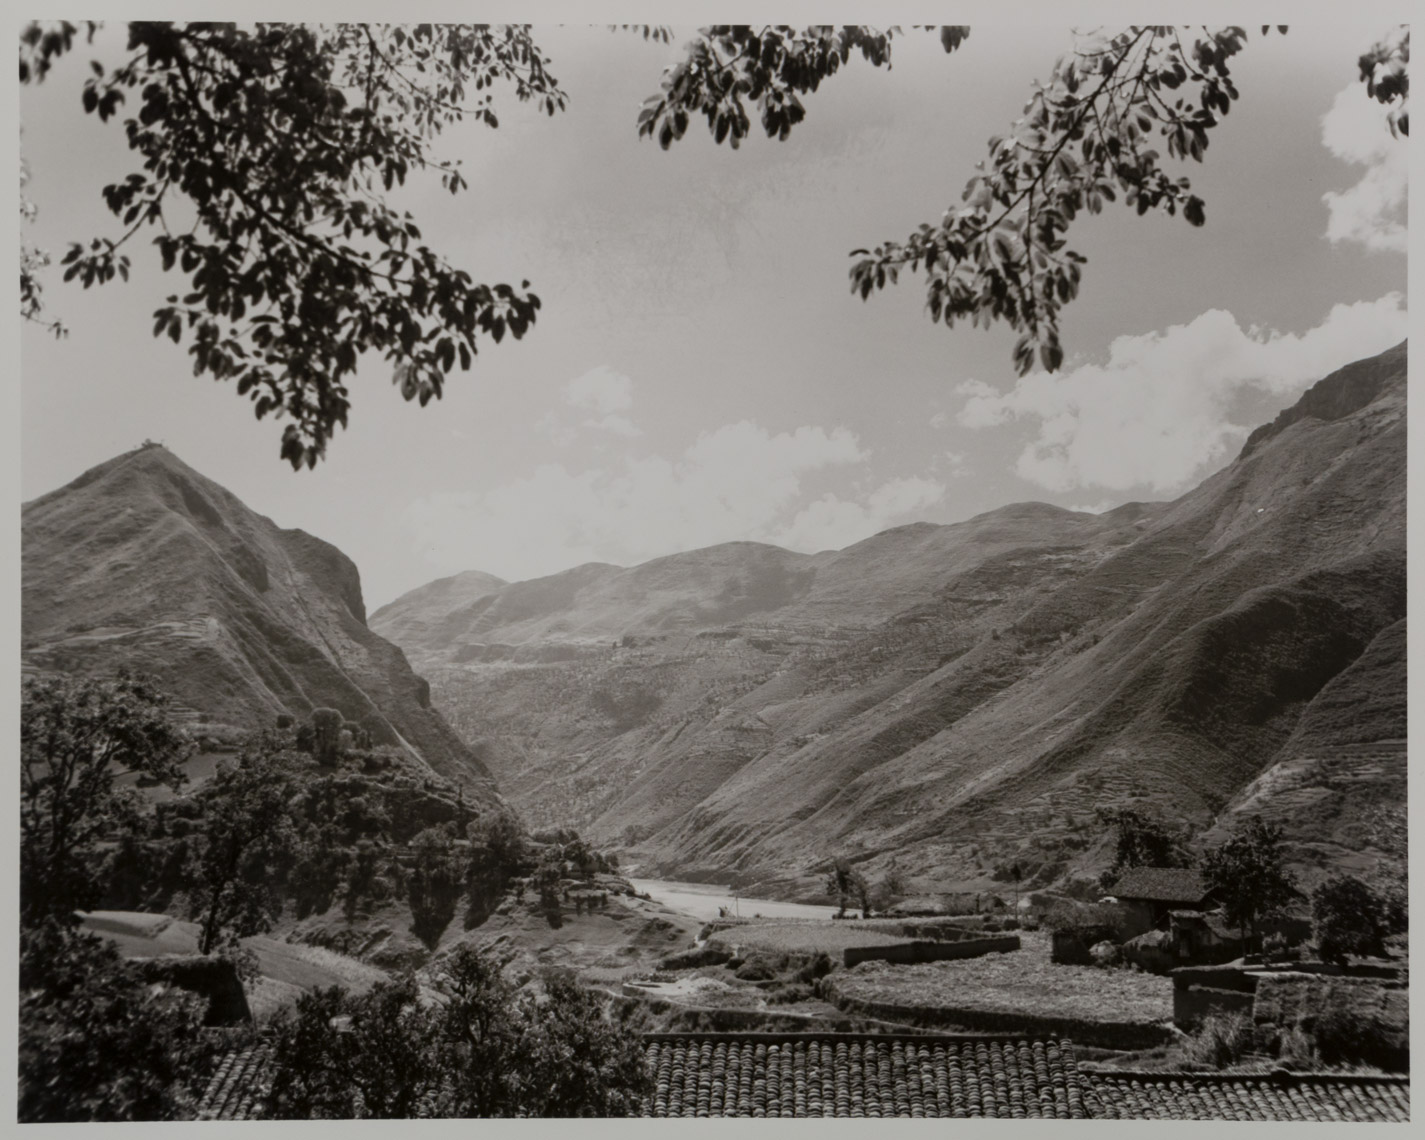 China, Three Gorges region, 1944, photograph by Cedric M. Poland, print located at the National Archives at Denver